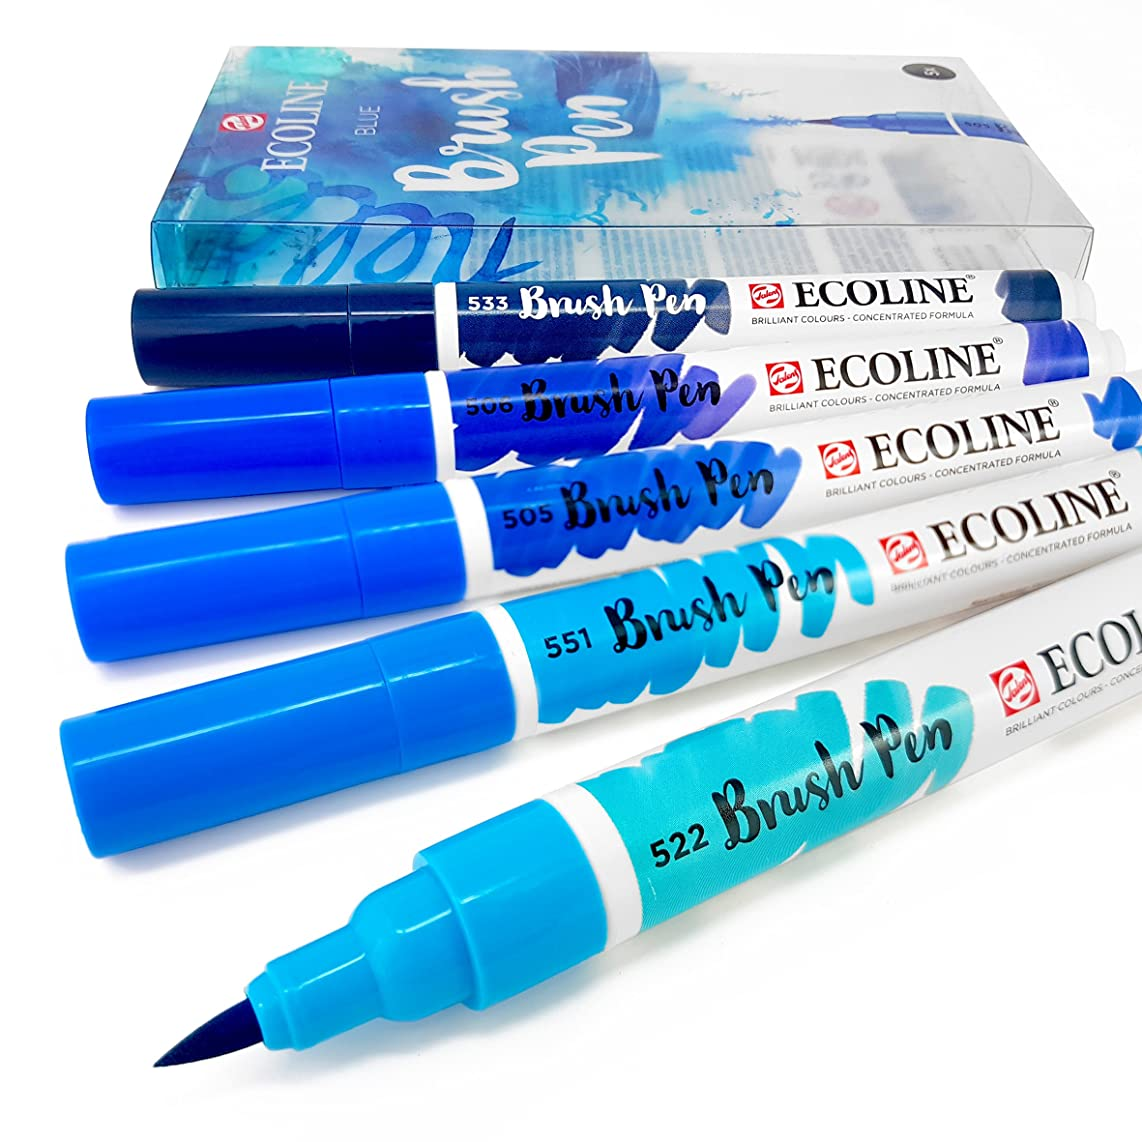 Royal Talens - Ecoline Liquid Watercolour Drawing Painting Brush Pens - Set of 5 in Plastic Wallet - Blue